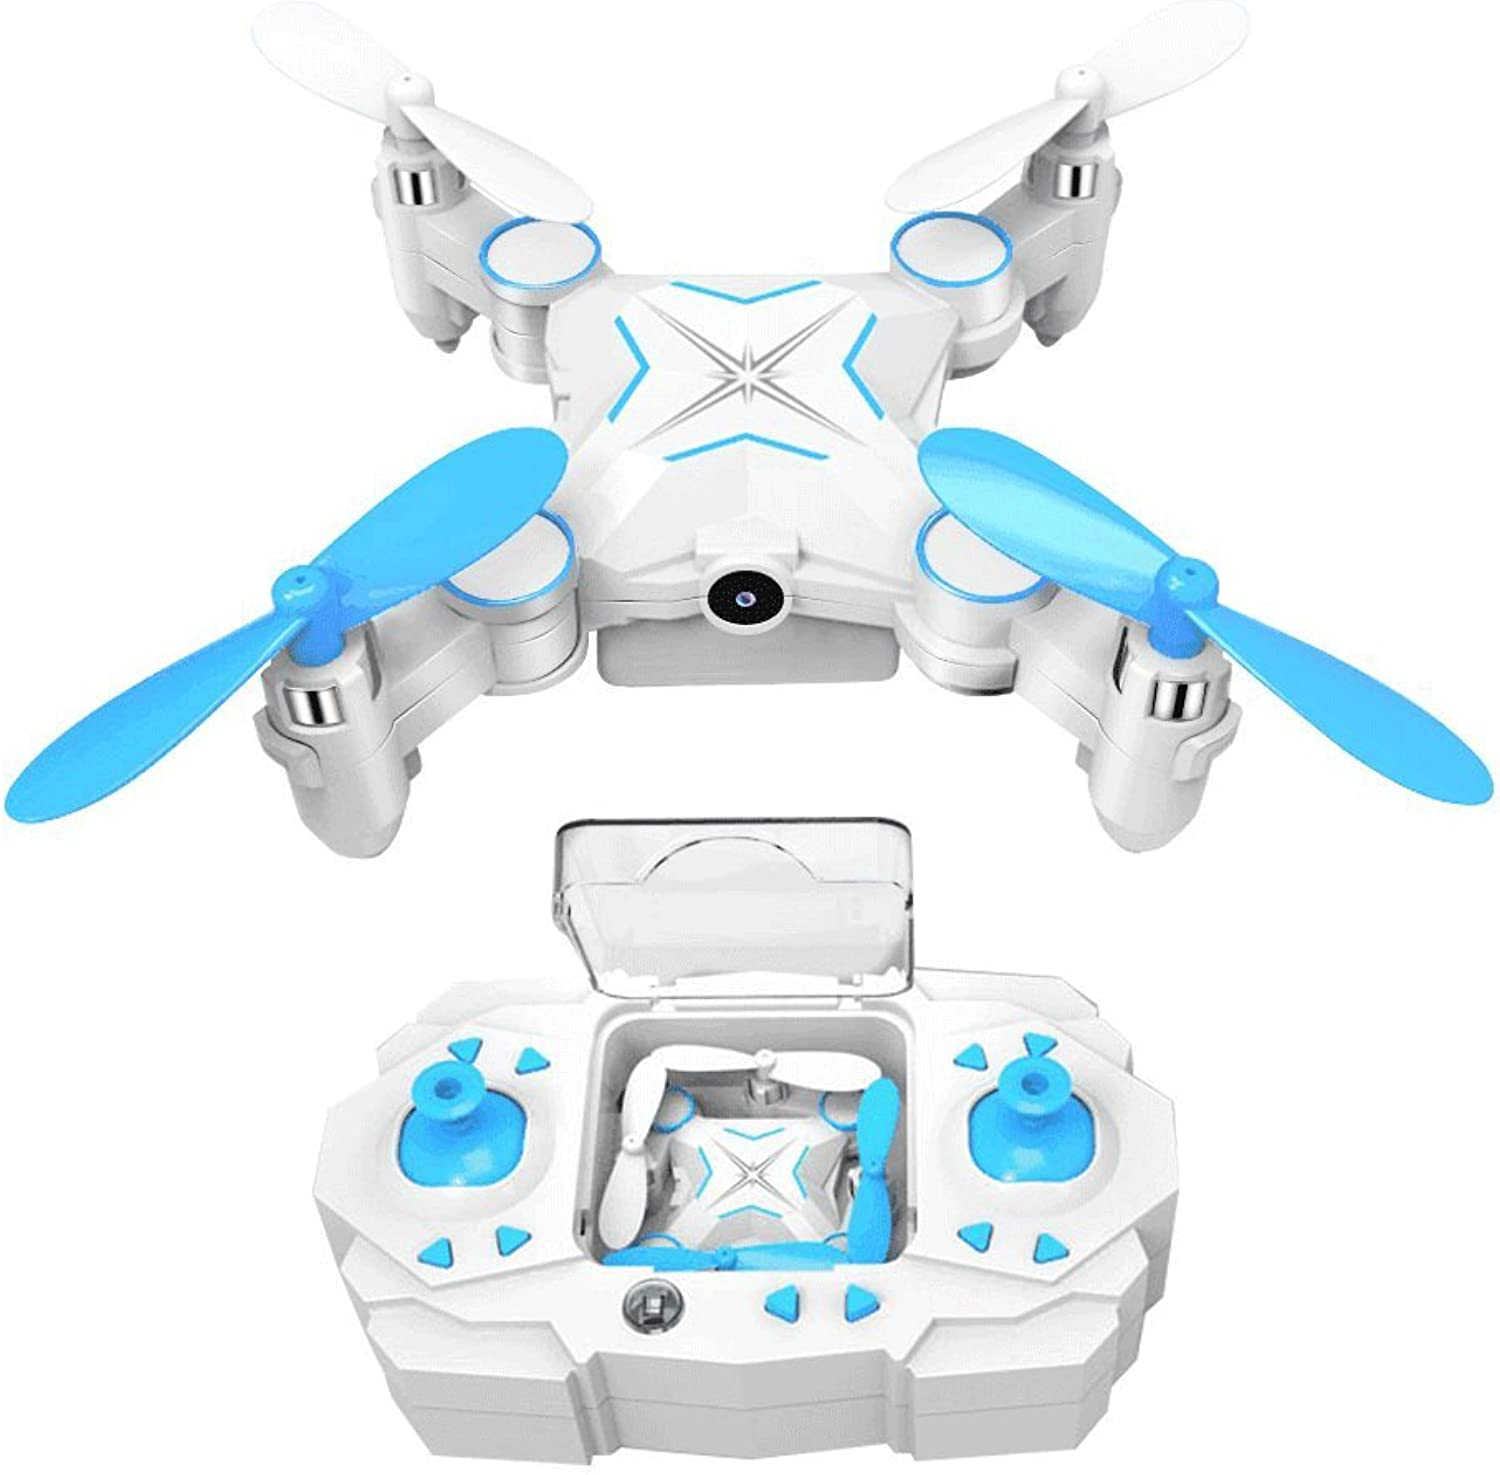 Mini Foldable RC Drone Wifi RC Quadcopter with 0.3 MP HD Camera Remote Control Drone